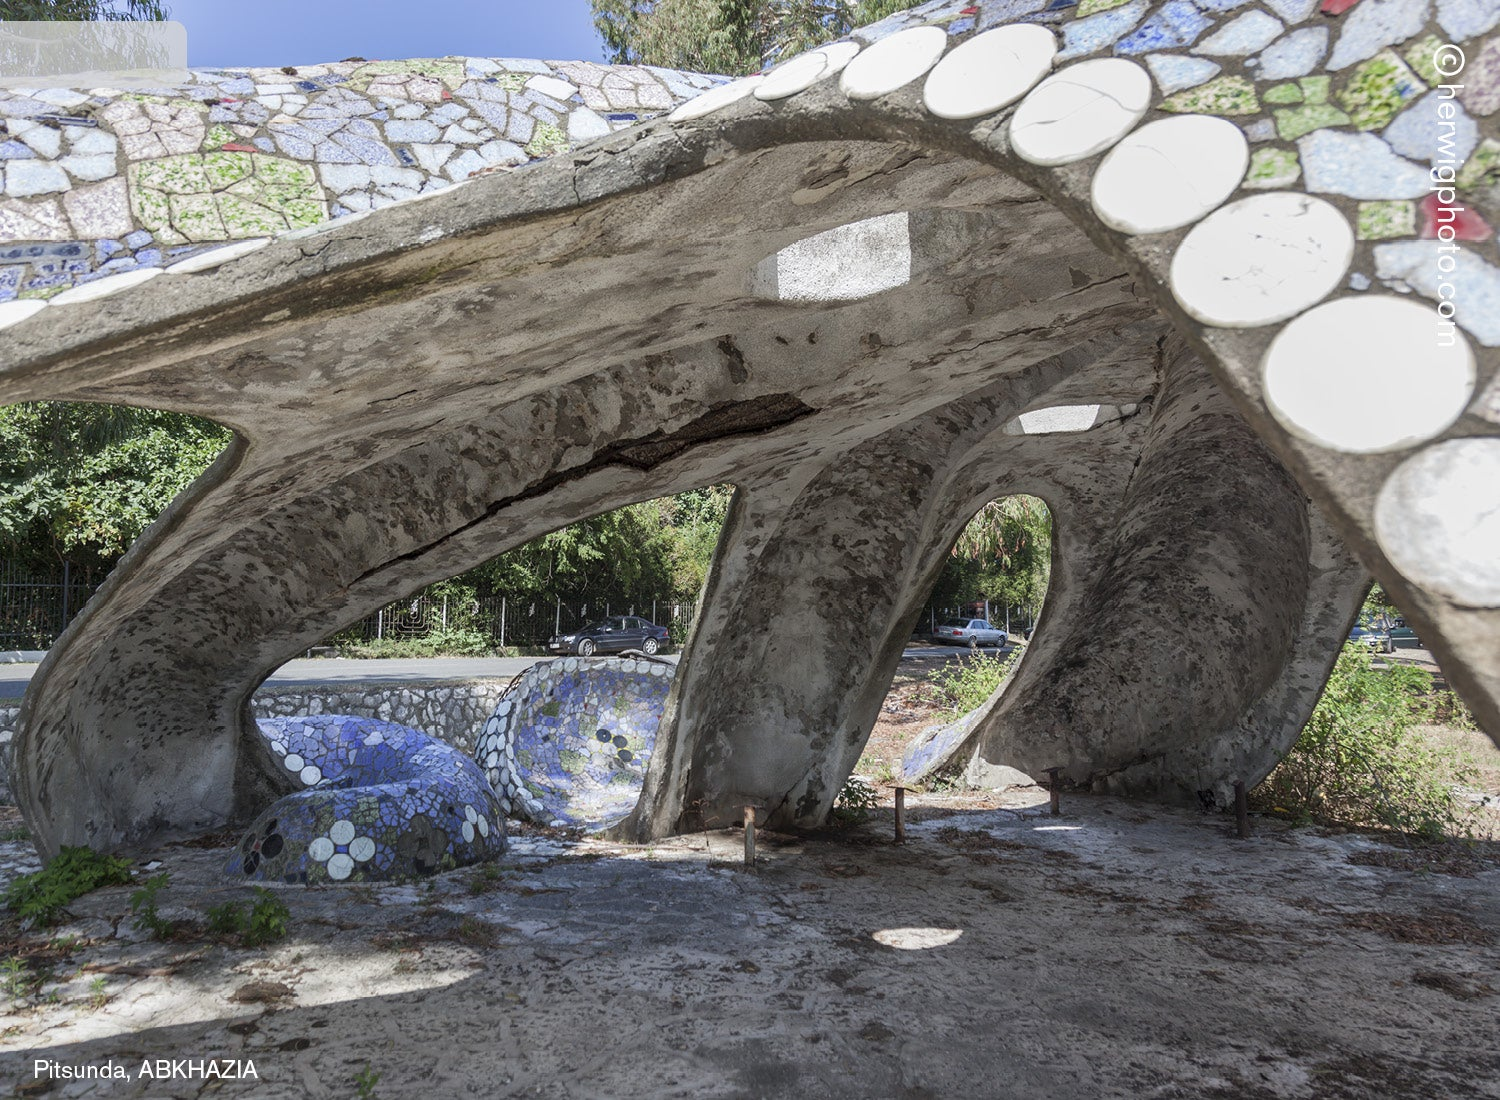 These Bus Stops Left Over From the Soviet Union Are So Wonderfully Bizarre